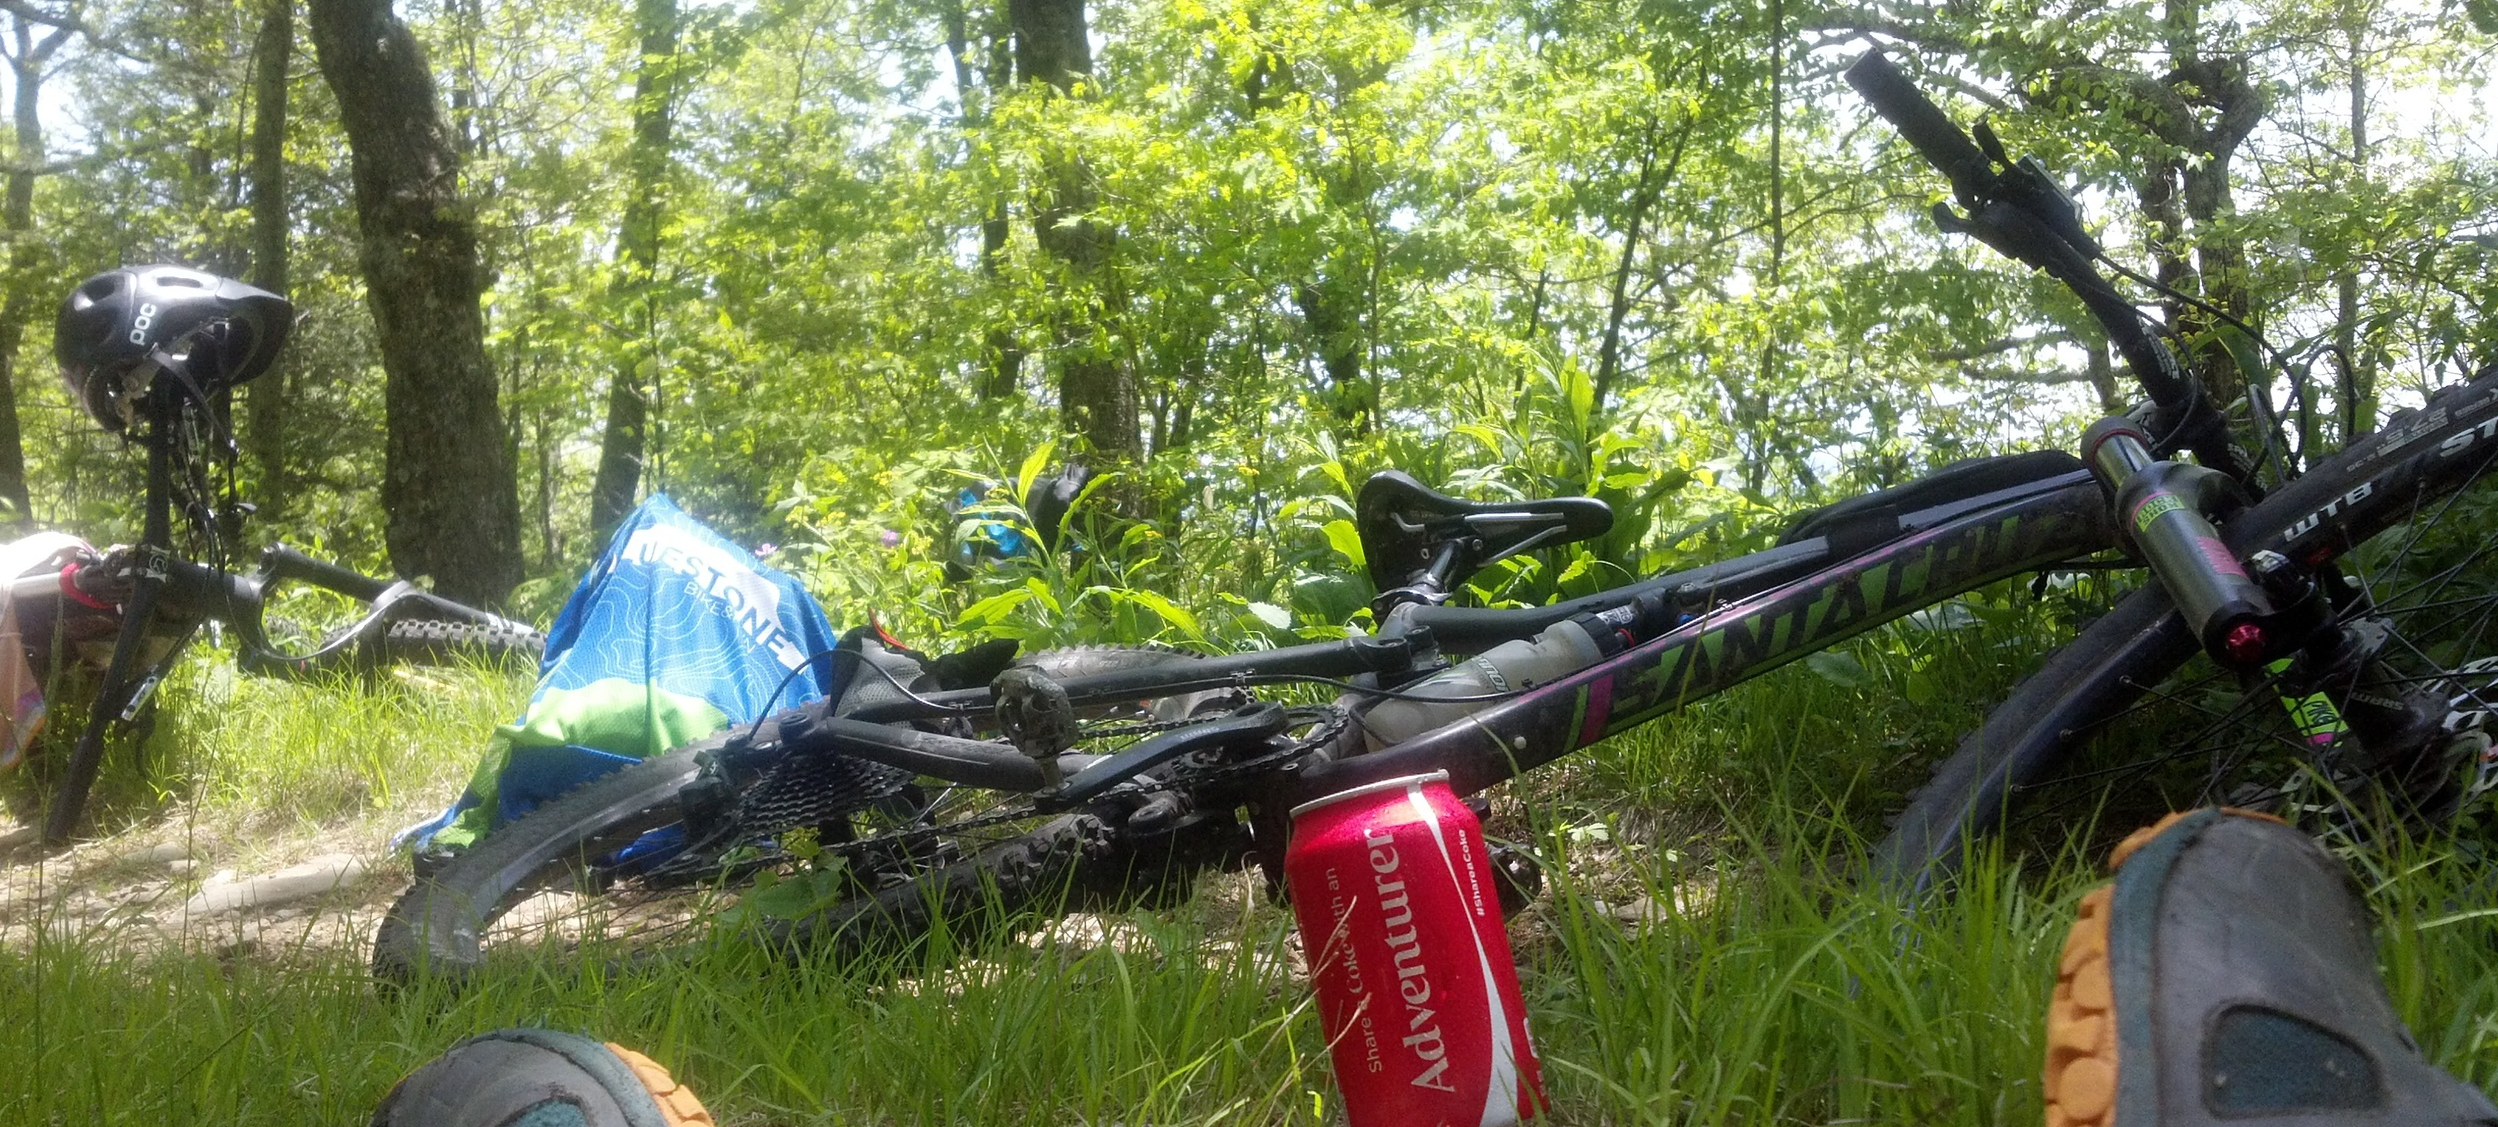 The Santa Cruz Bronson was my weapon of choice, with 150mm of VPP suspension this thing was a trail ripper!